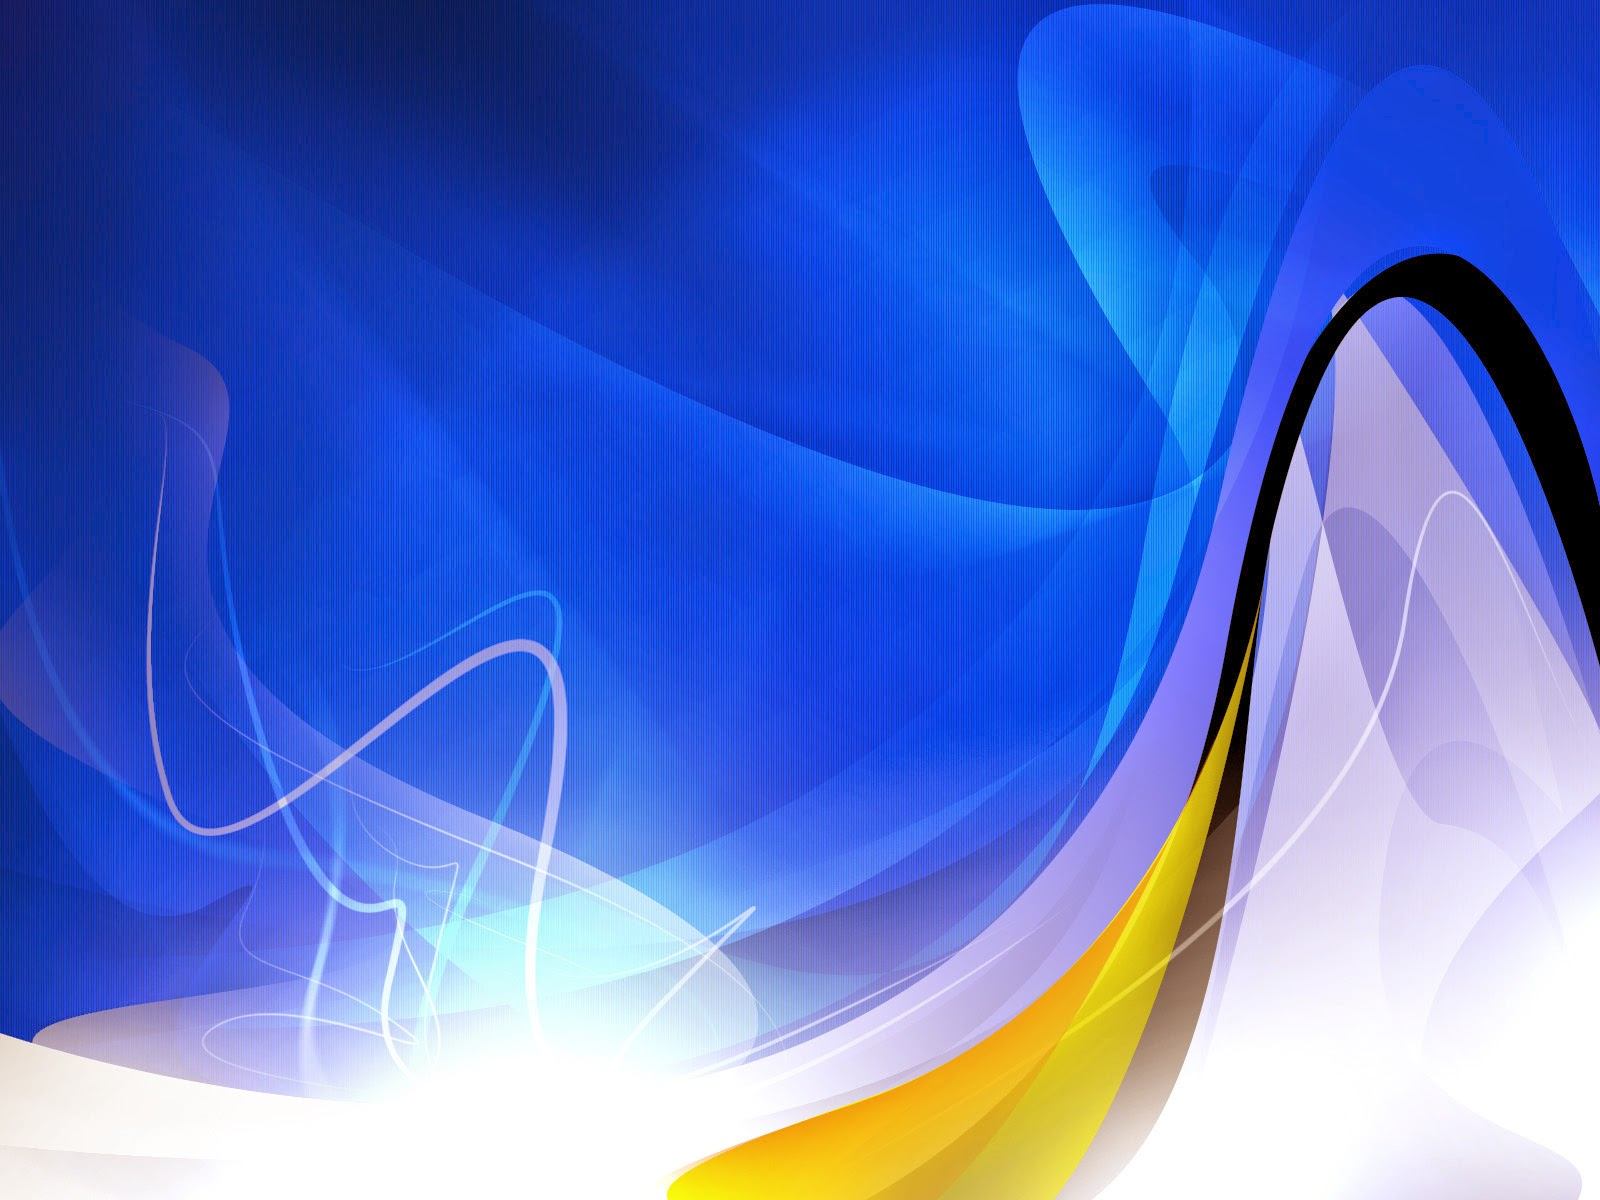 abstract wallpapers wallpaper hqpictures - photo #8